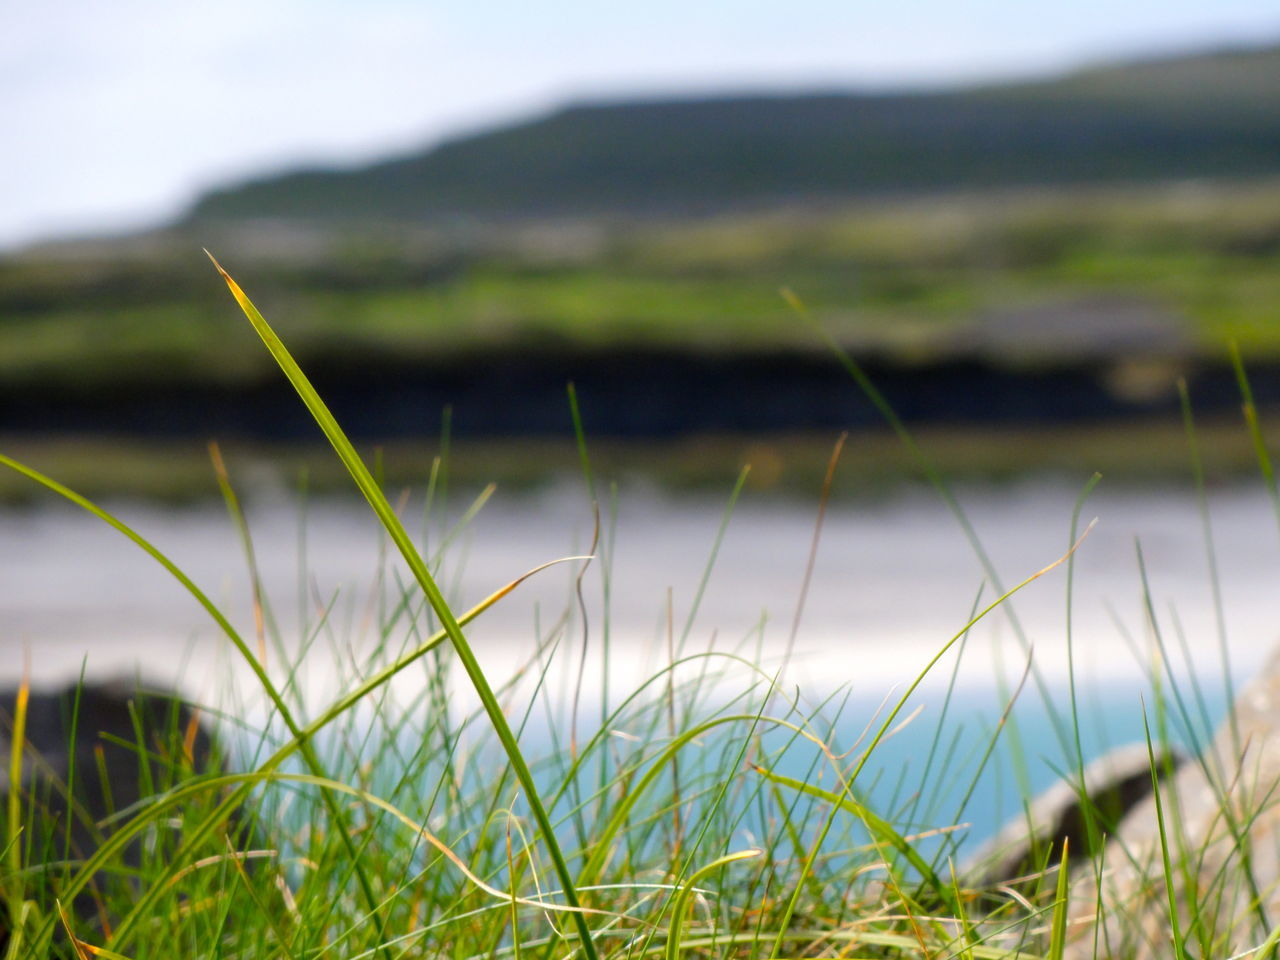 Beach Beauty In Nature Blue Water Cat Close-up Focus On Foreground Grass Green Color Growth Ireland Landscape Moycullen Nature No People Peacfull Plant Selective Focus Stem Suuny Day The Atlantic Ocean The Place To Be Landscape With Whitewall